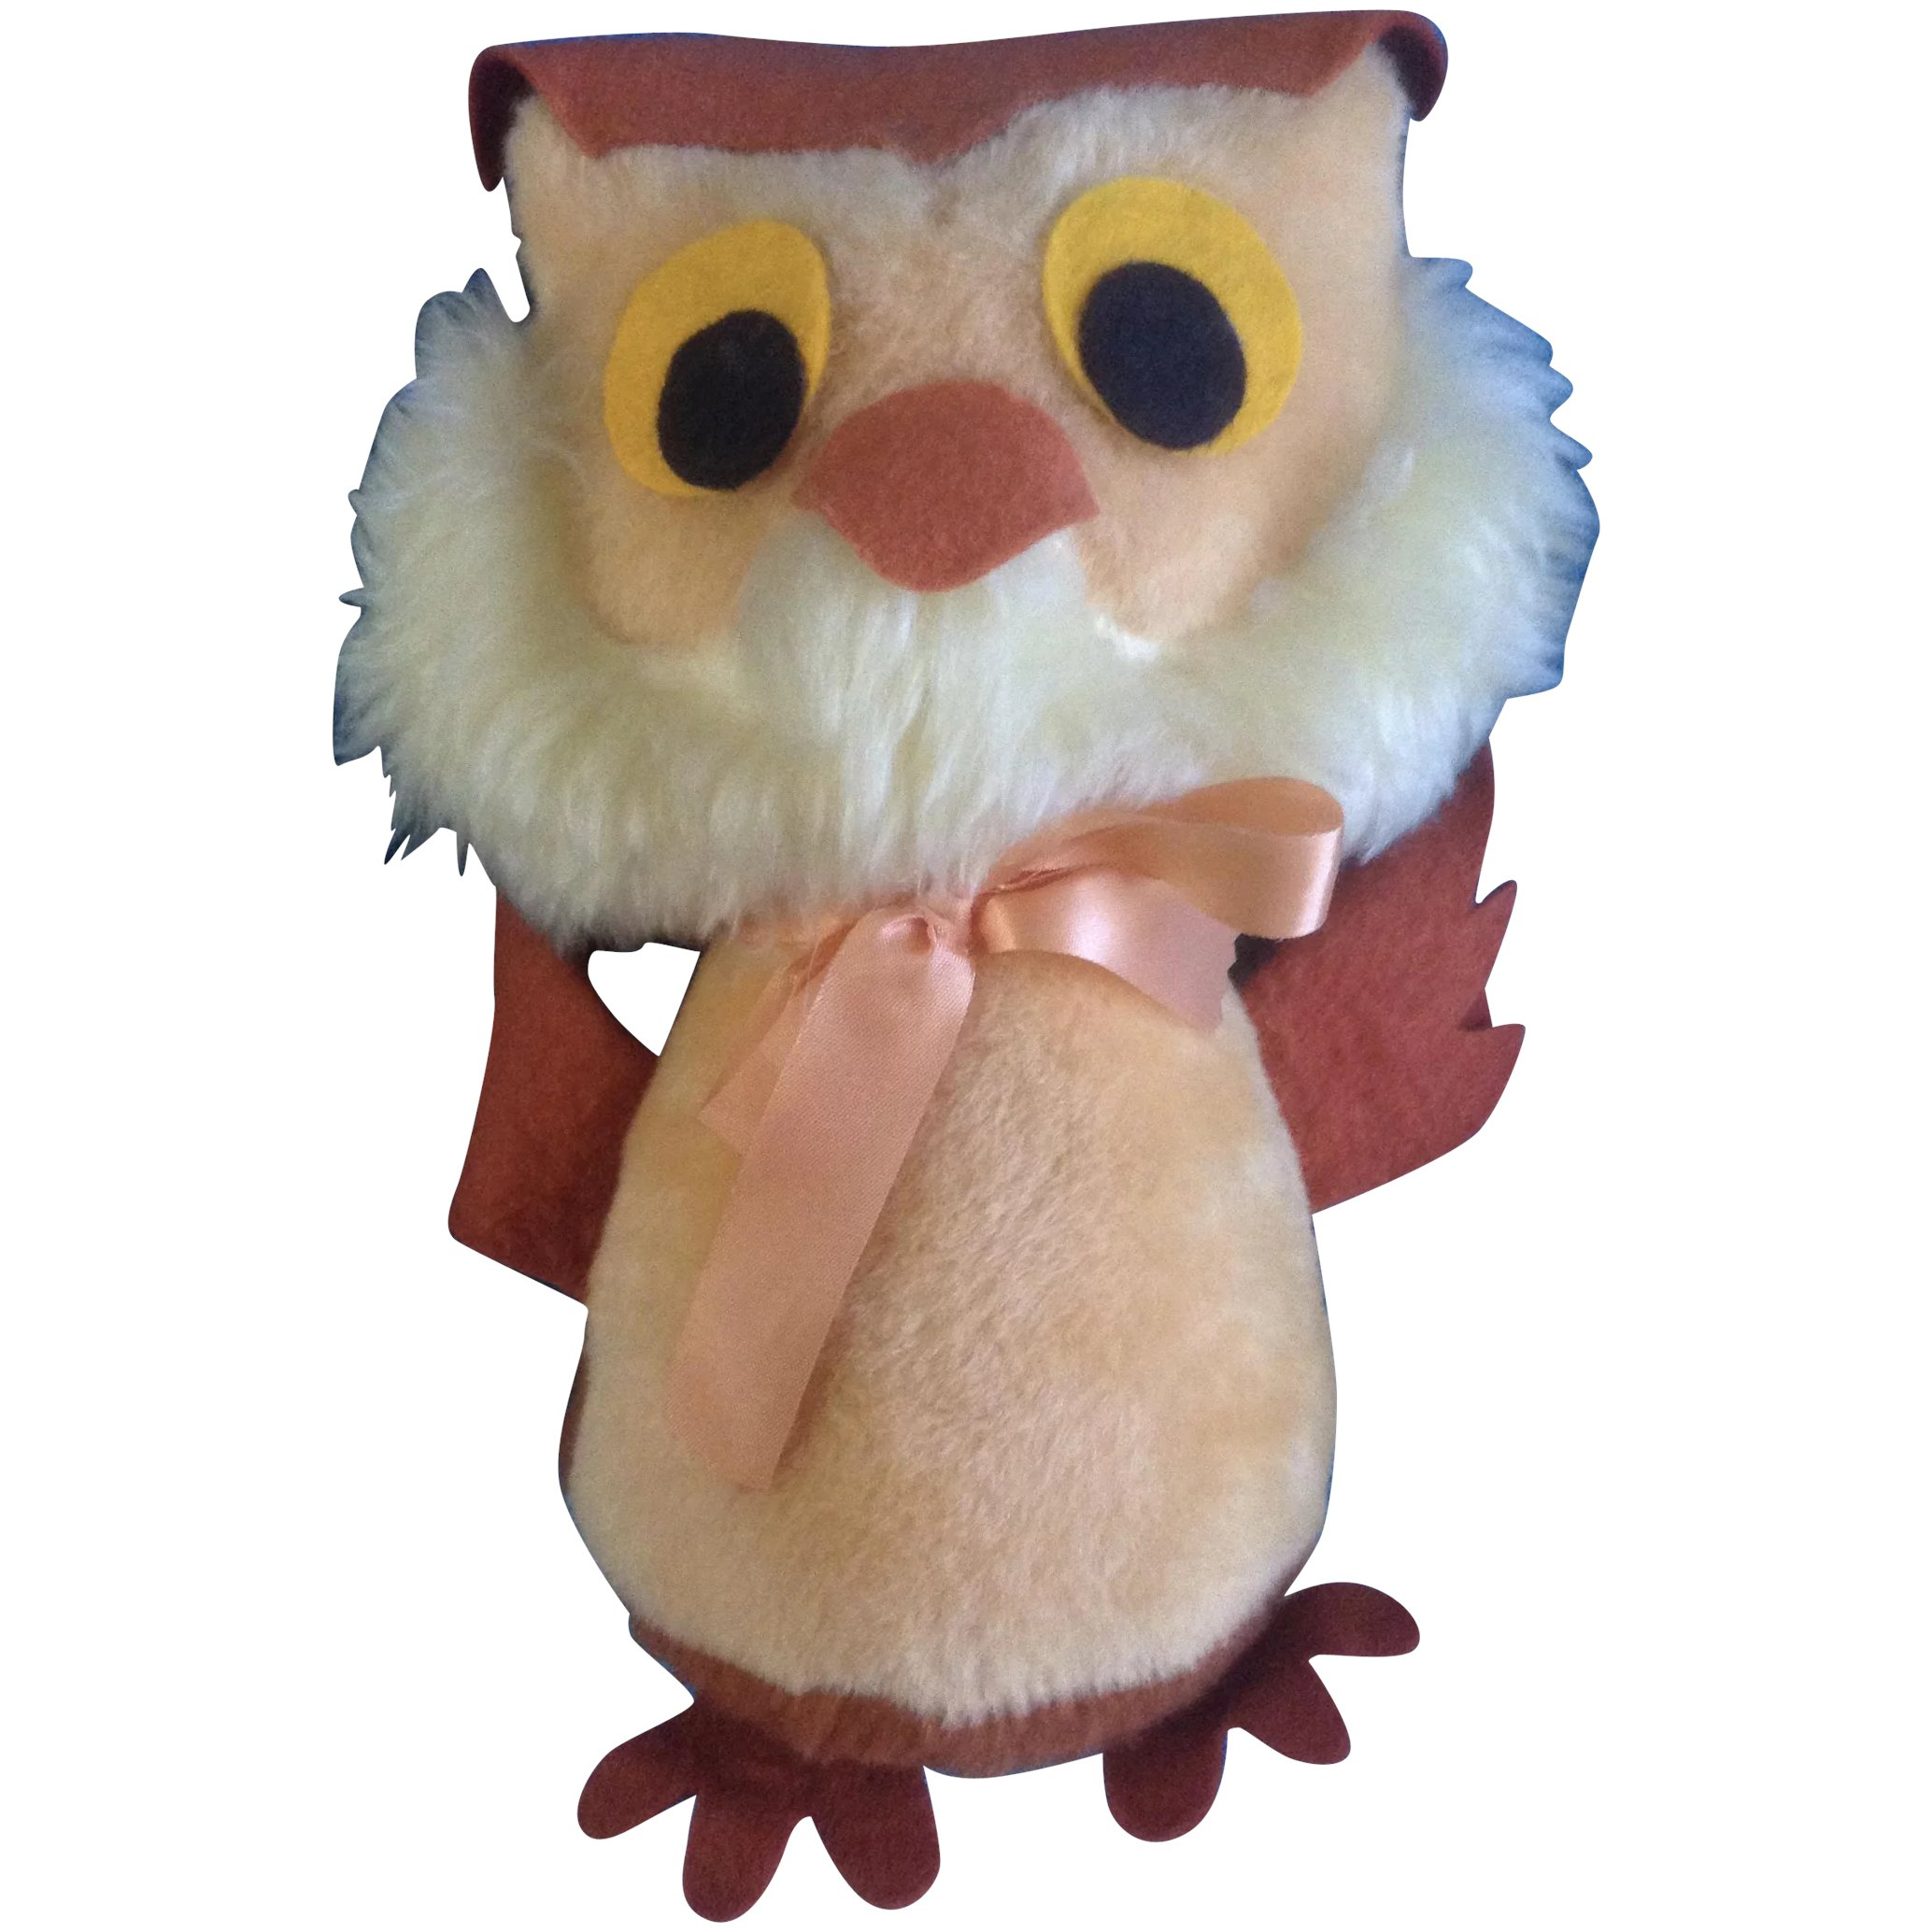 Vintage Witty Owl Disney Winnie The Pooh Stuffed Plush Animal Gumgumfuninthesun Ruby Lane